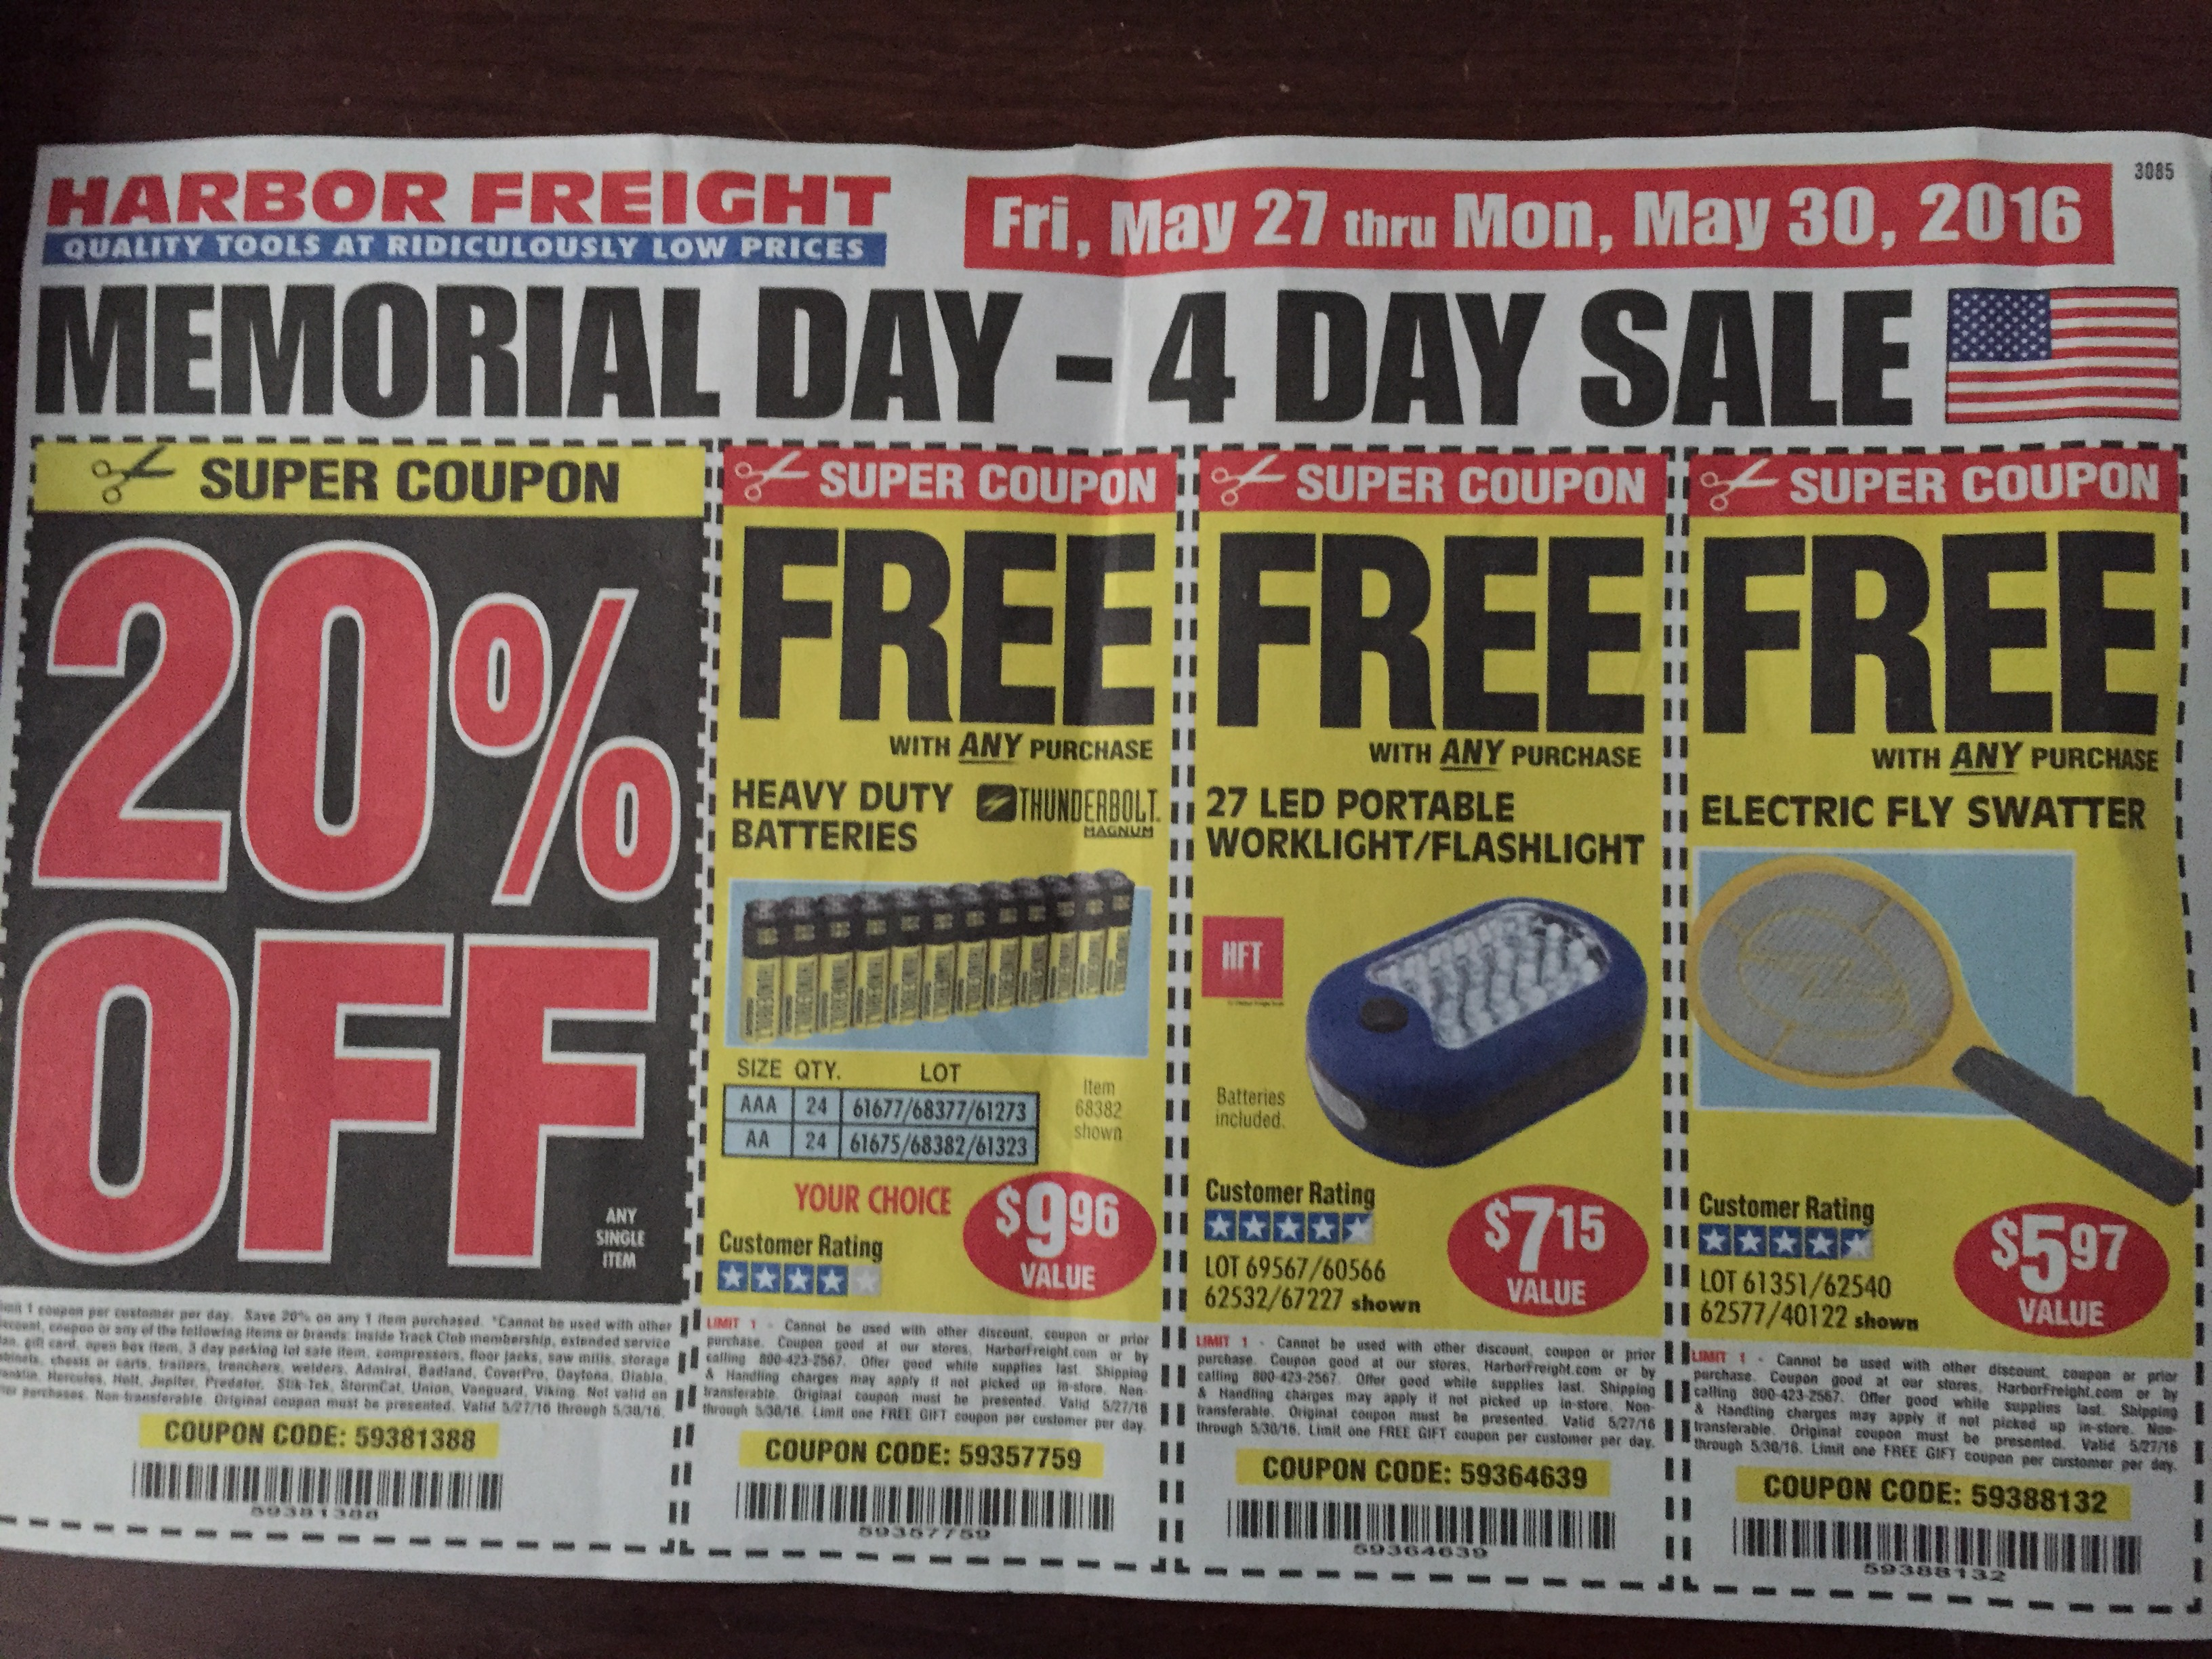 Duty free coupons